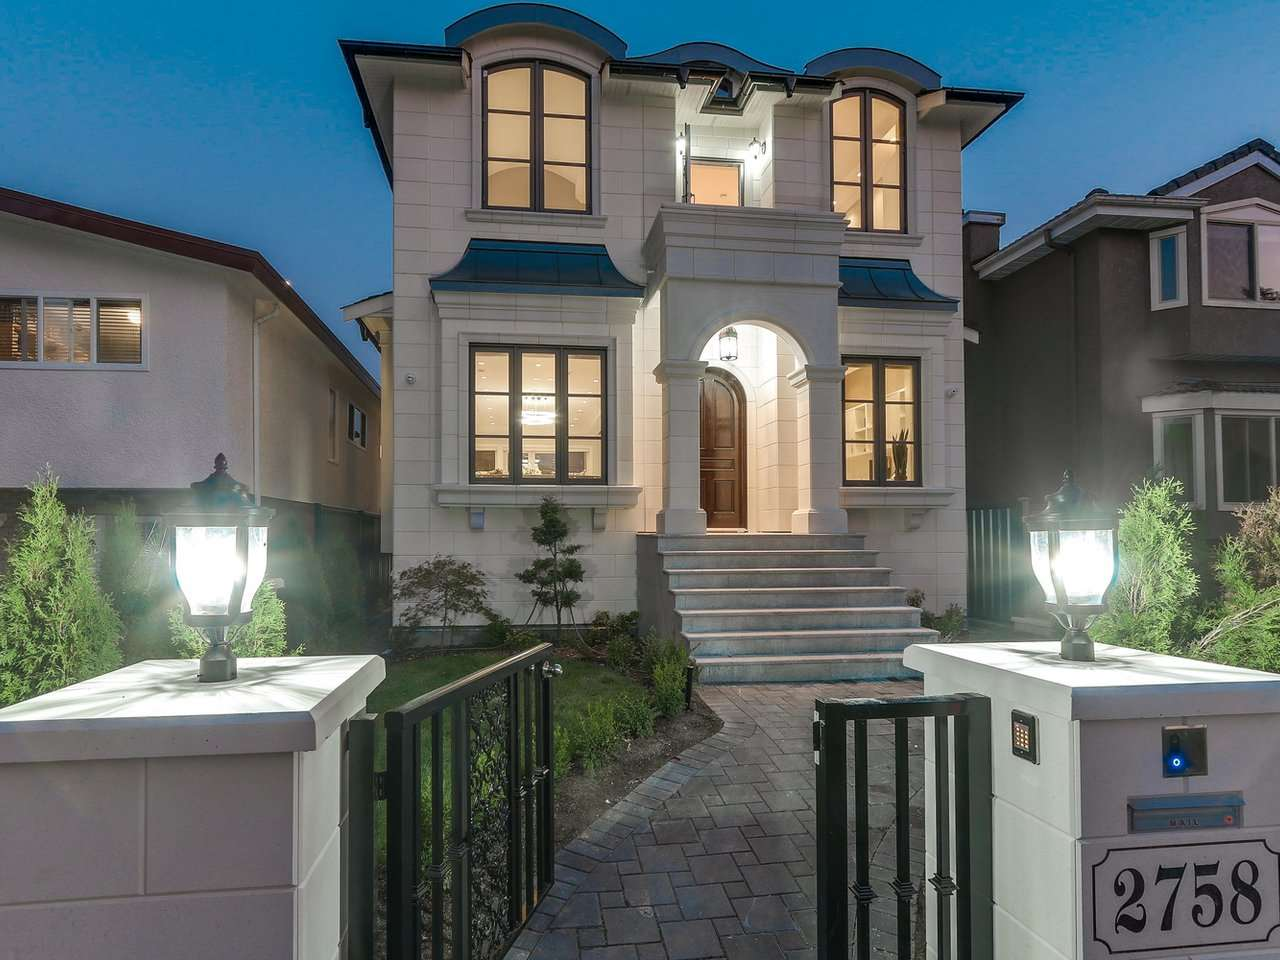 Detached at 2758 W 22ND AVENUE, Vancouver West, British Columbia. Image 1